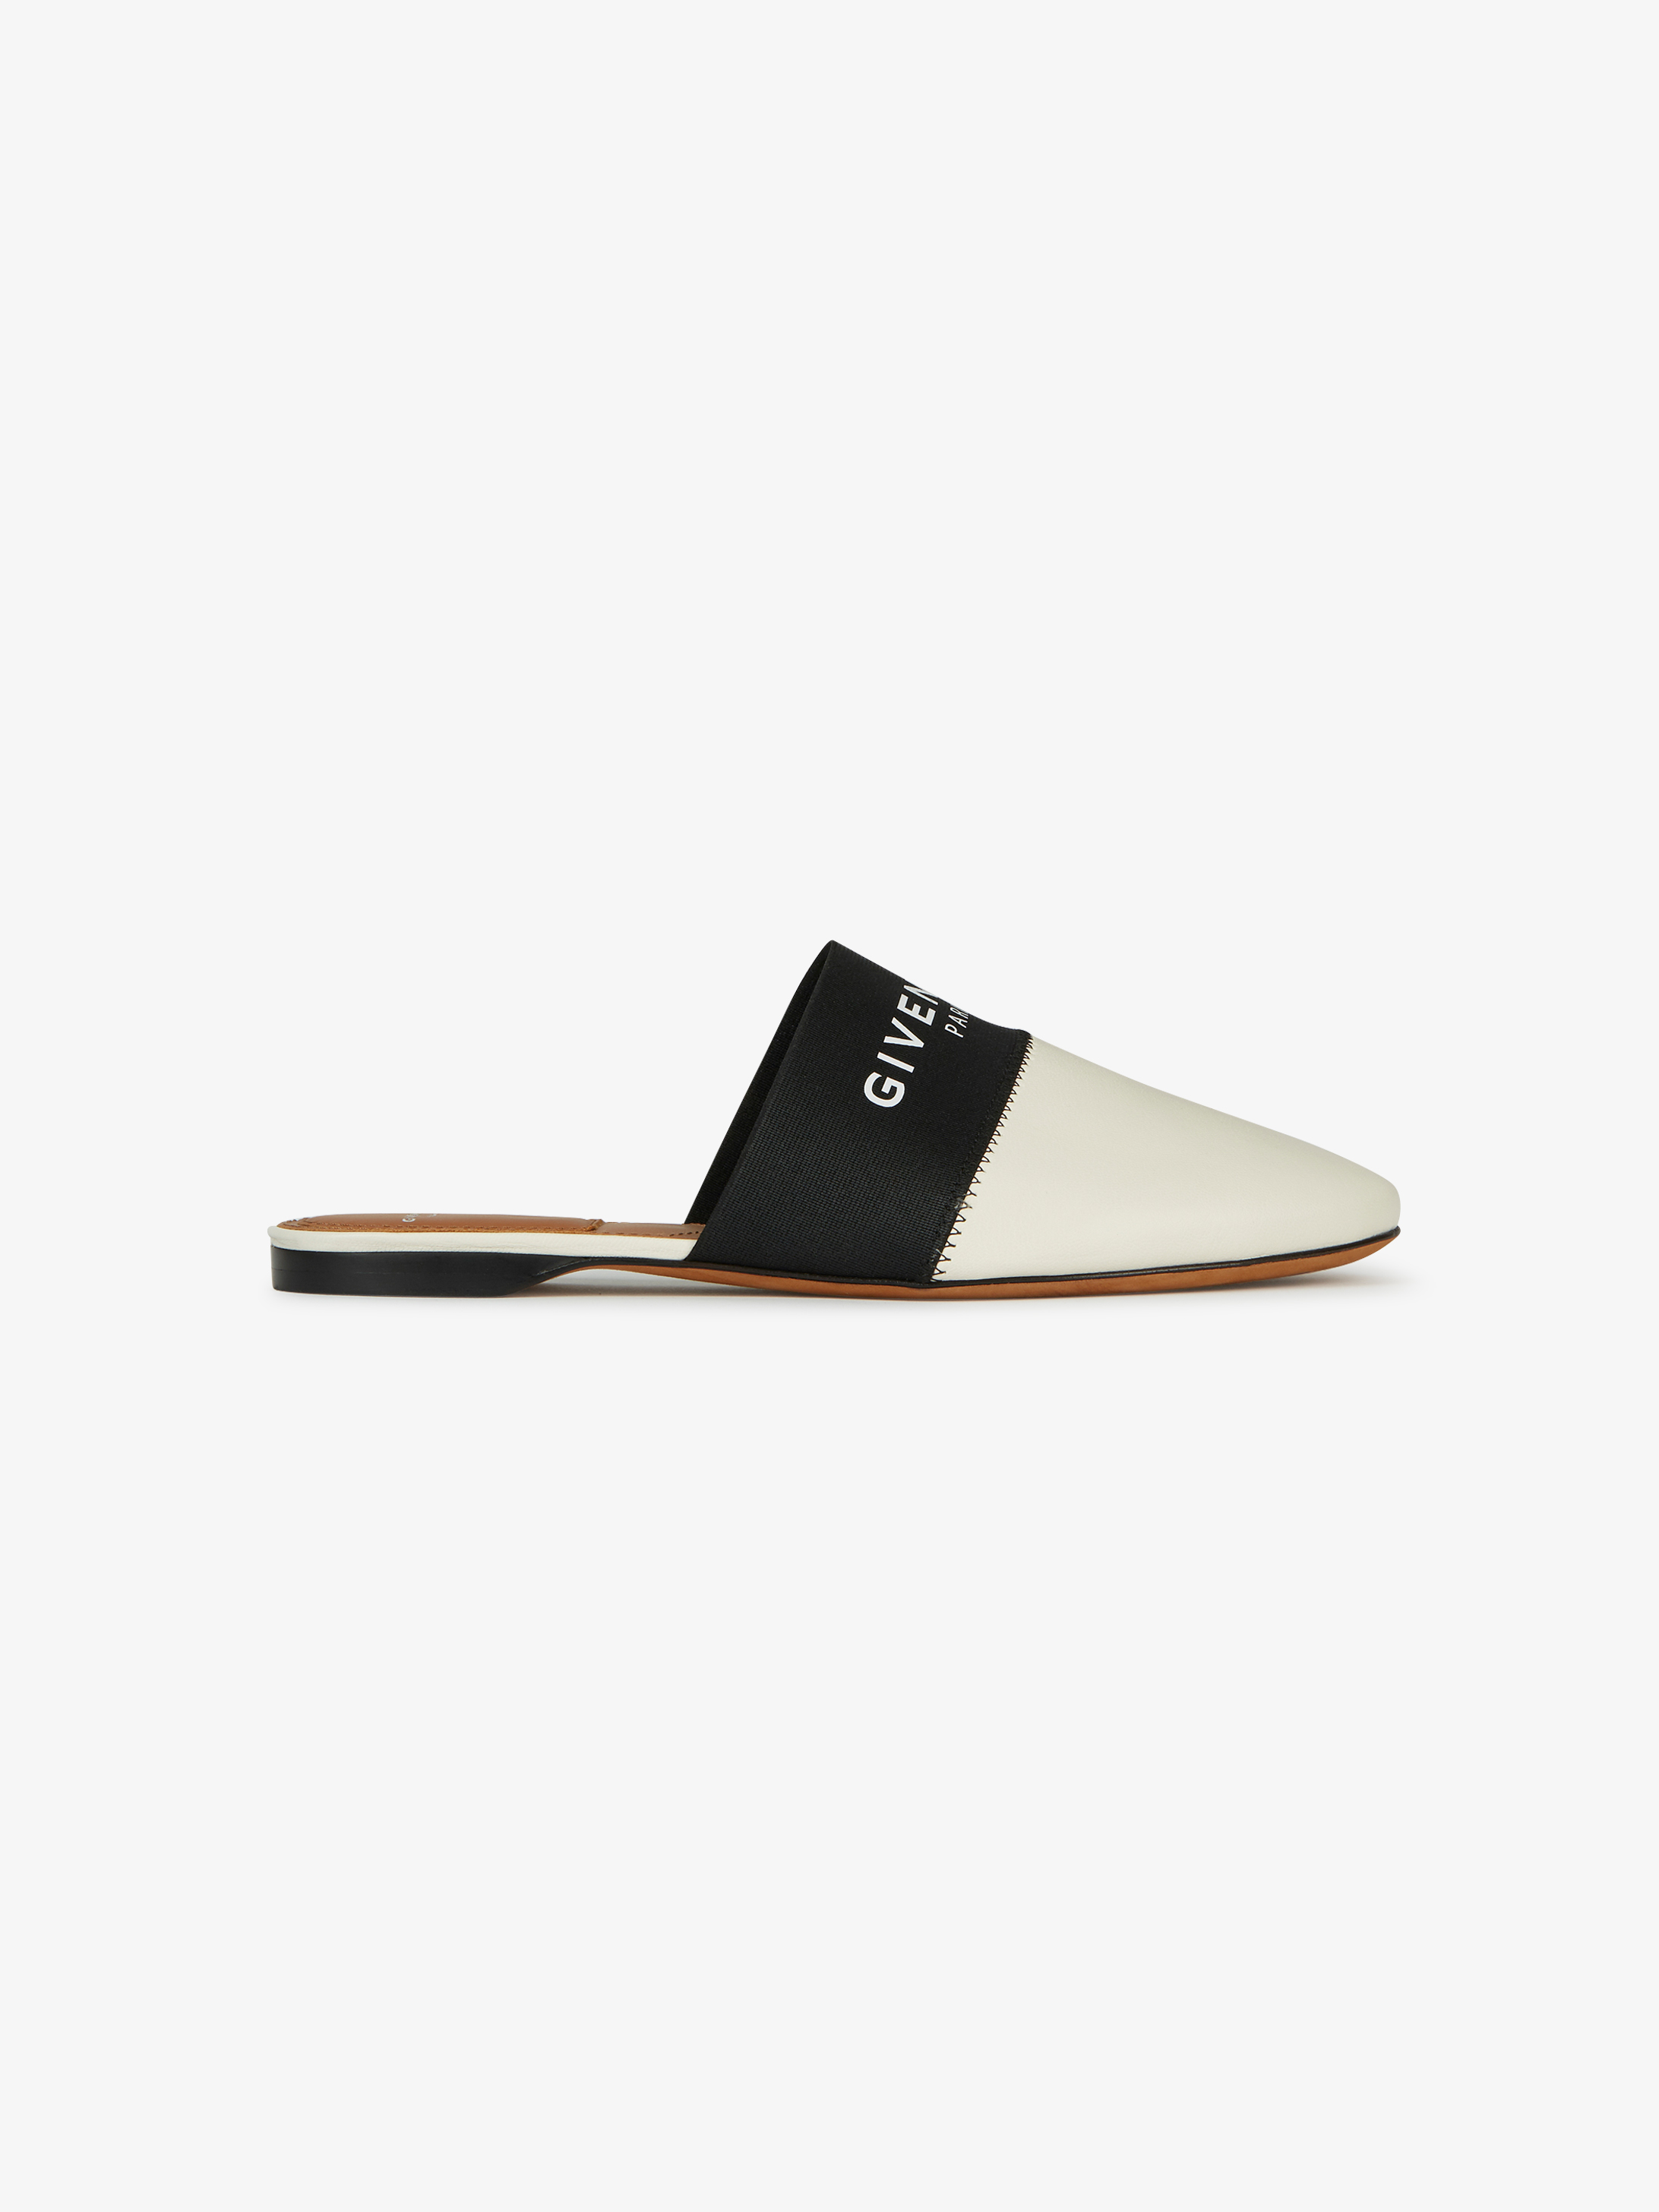 GIVENCHY PARIS leather mules